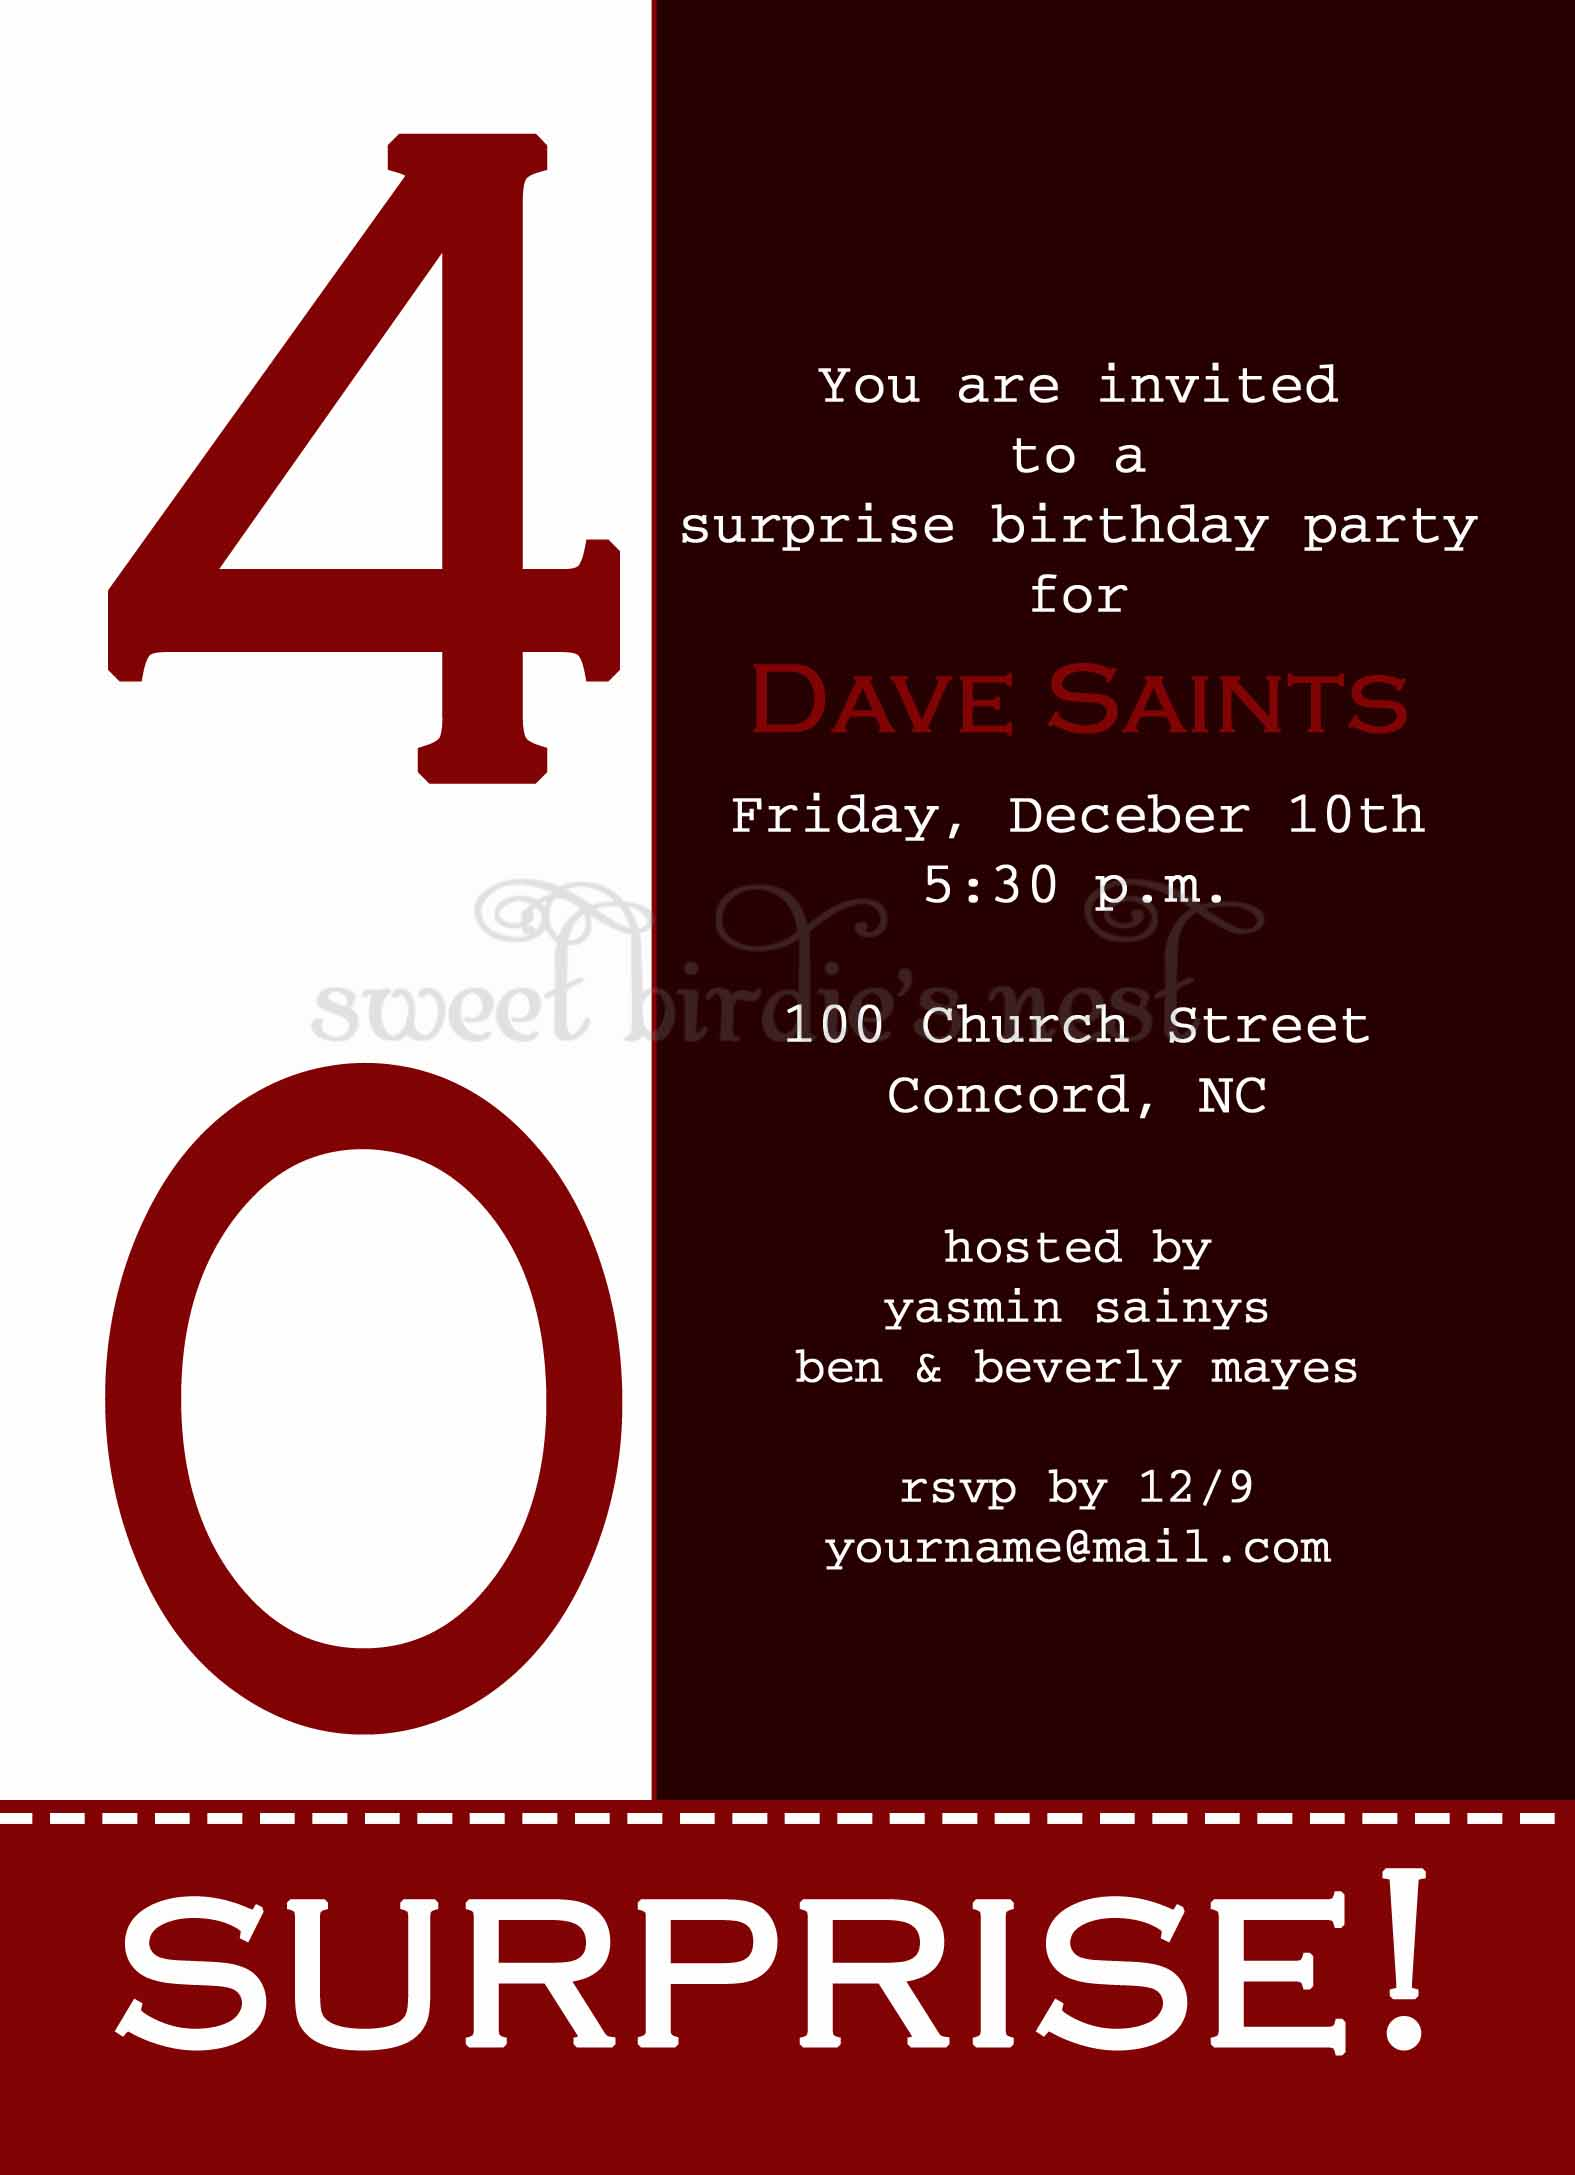 Fine Golf Themed Birthday Party Invitations Image Collection